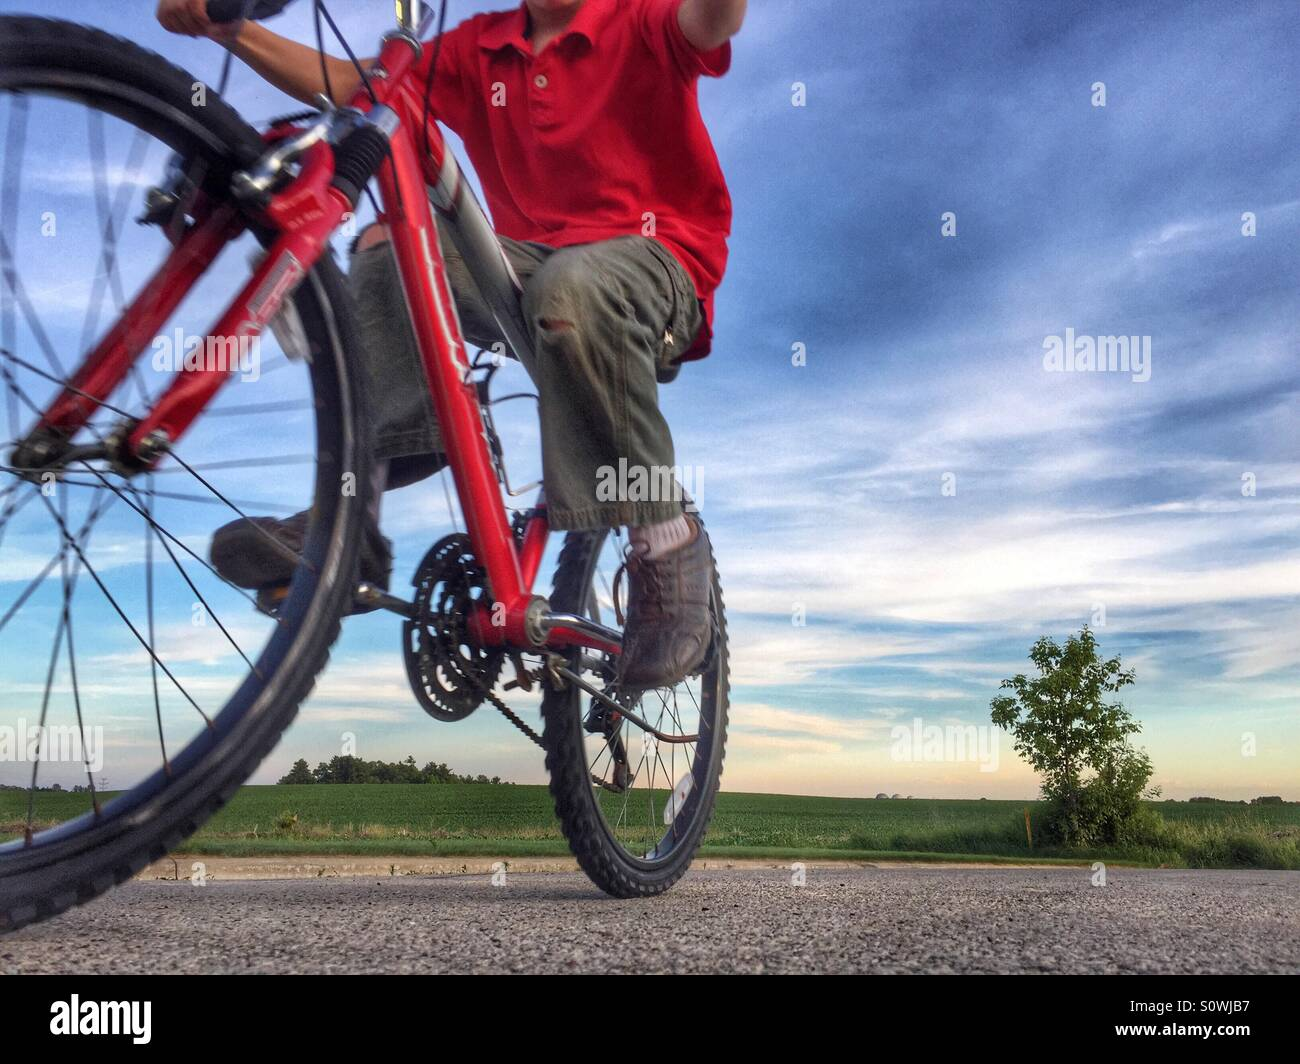 View looking up at a boy riding past on his red bicycle - Stock Image